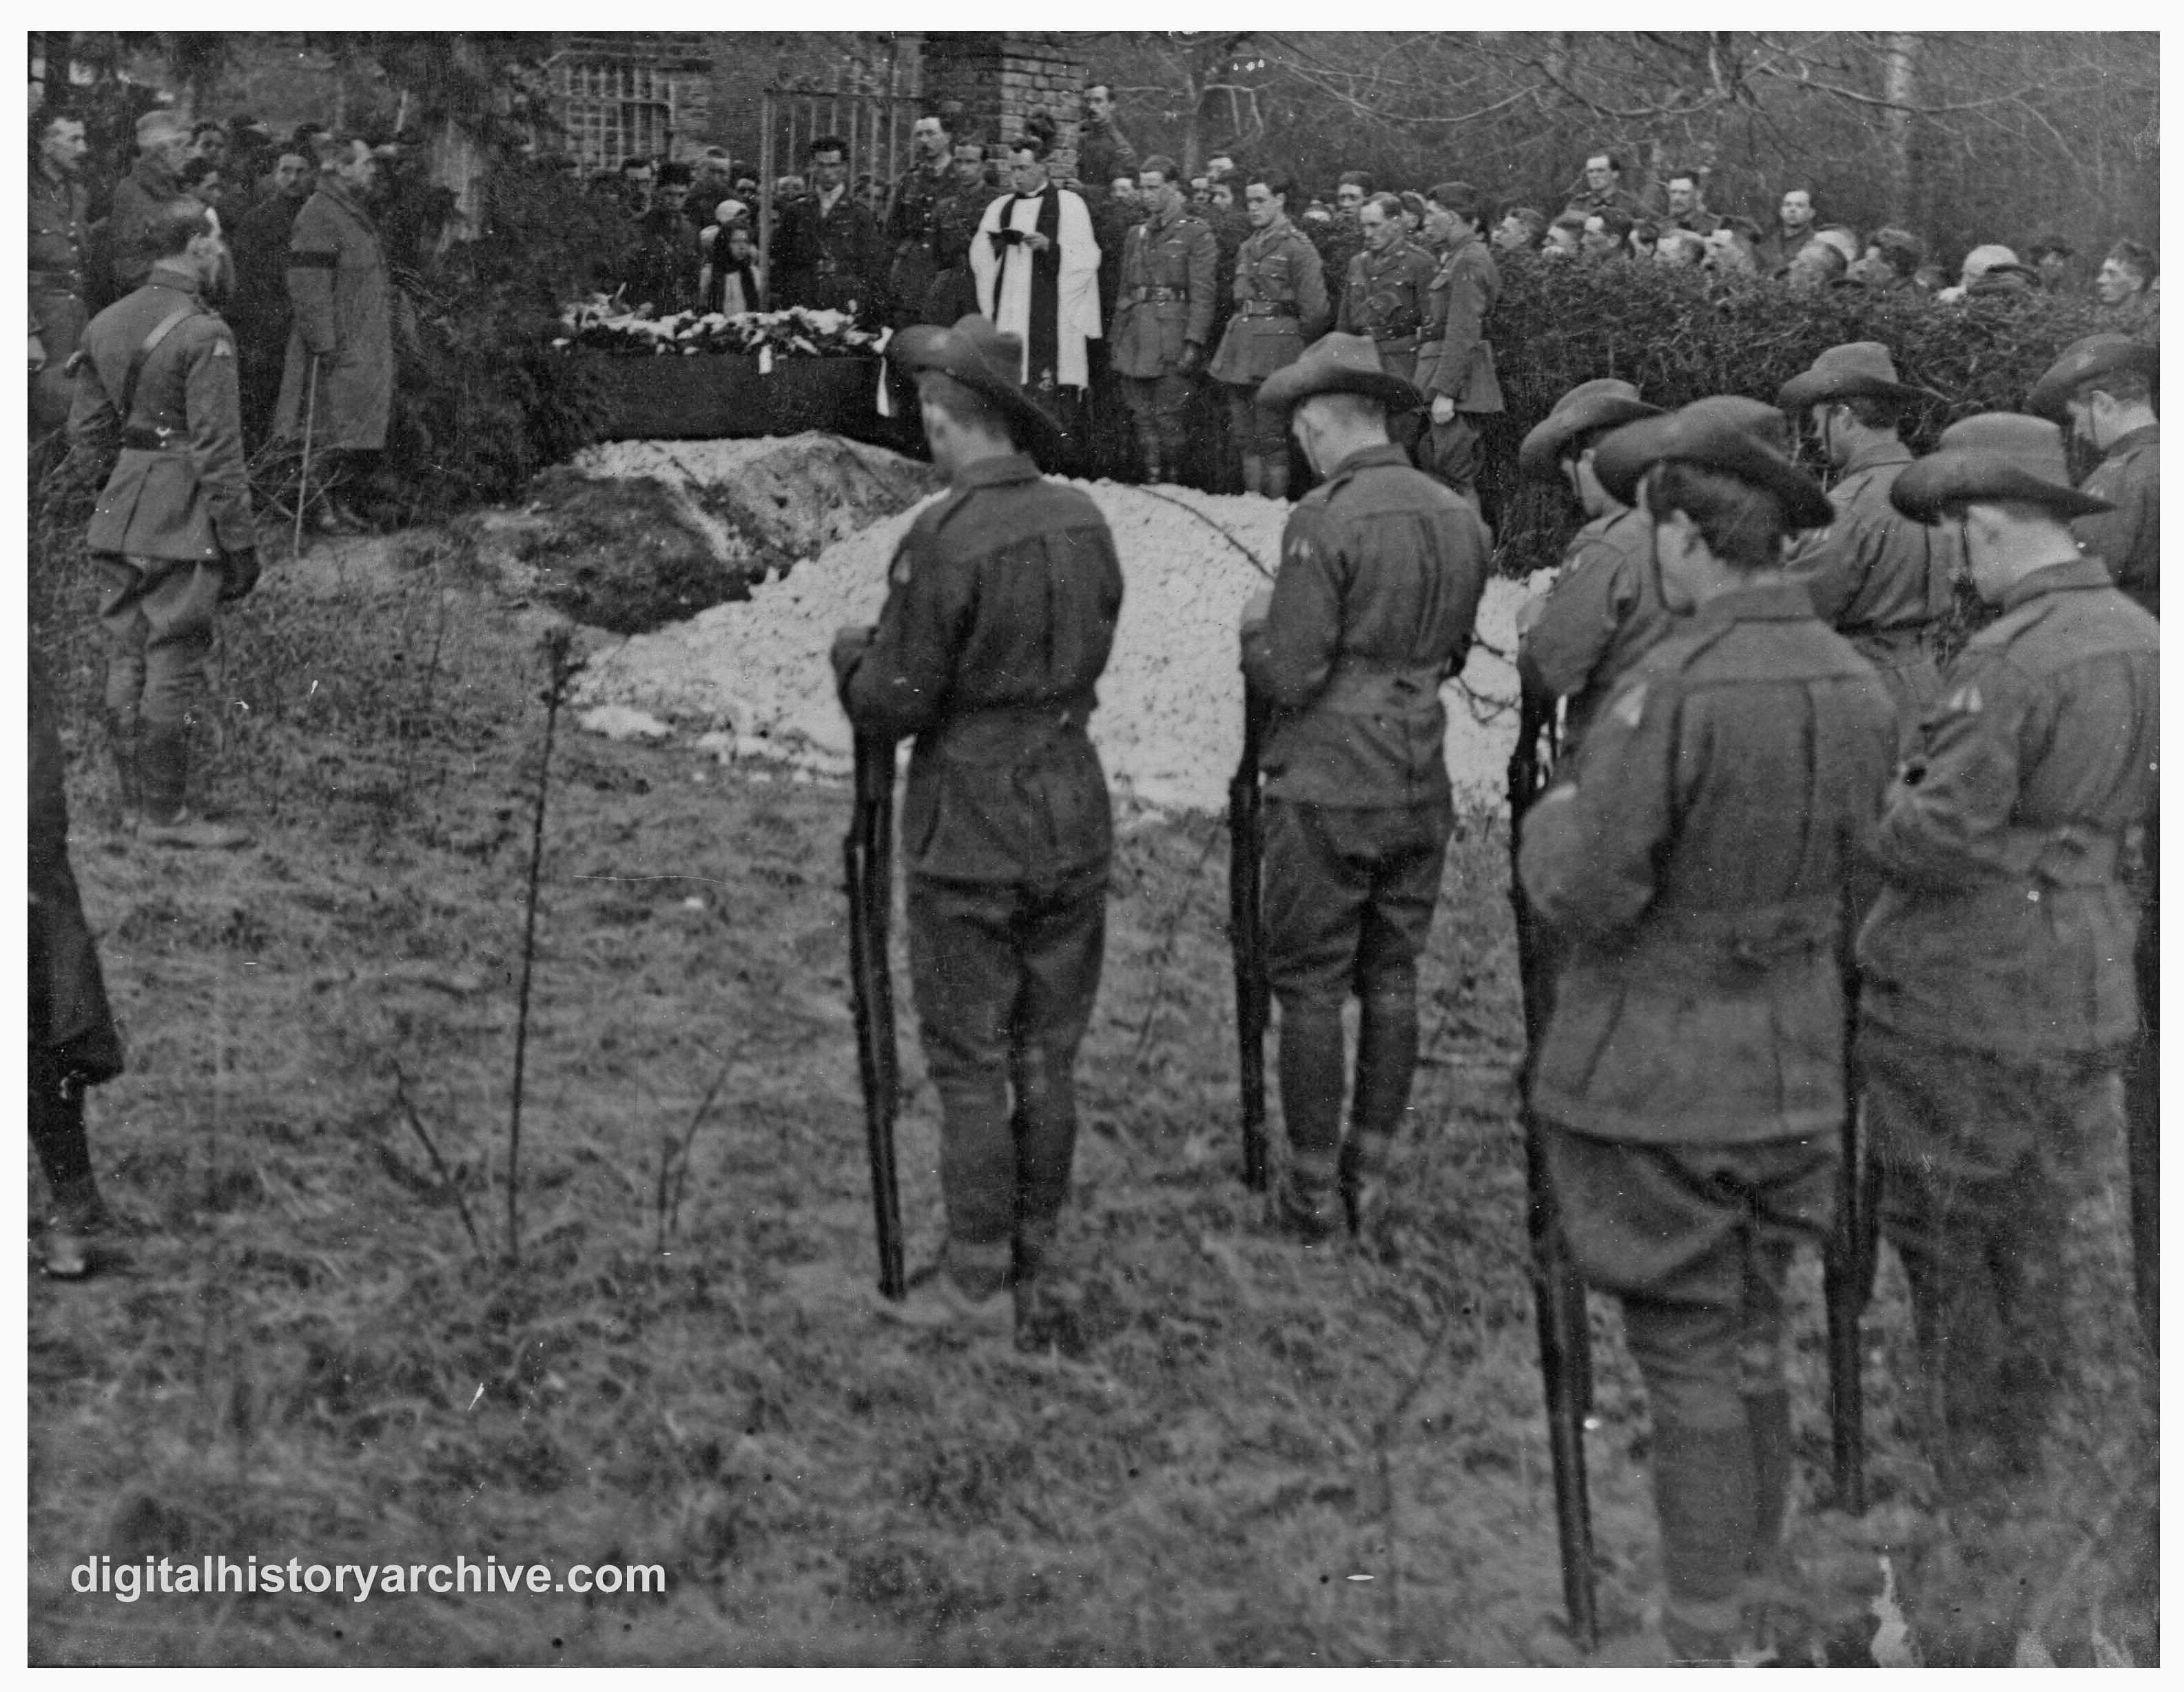 WWI, 1918 - Graveside scene during the funeral of Baron von ...